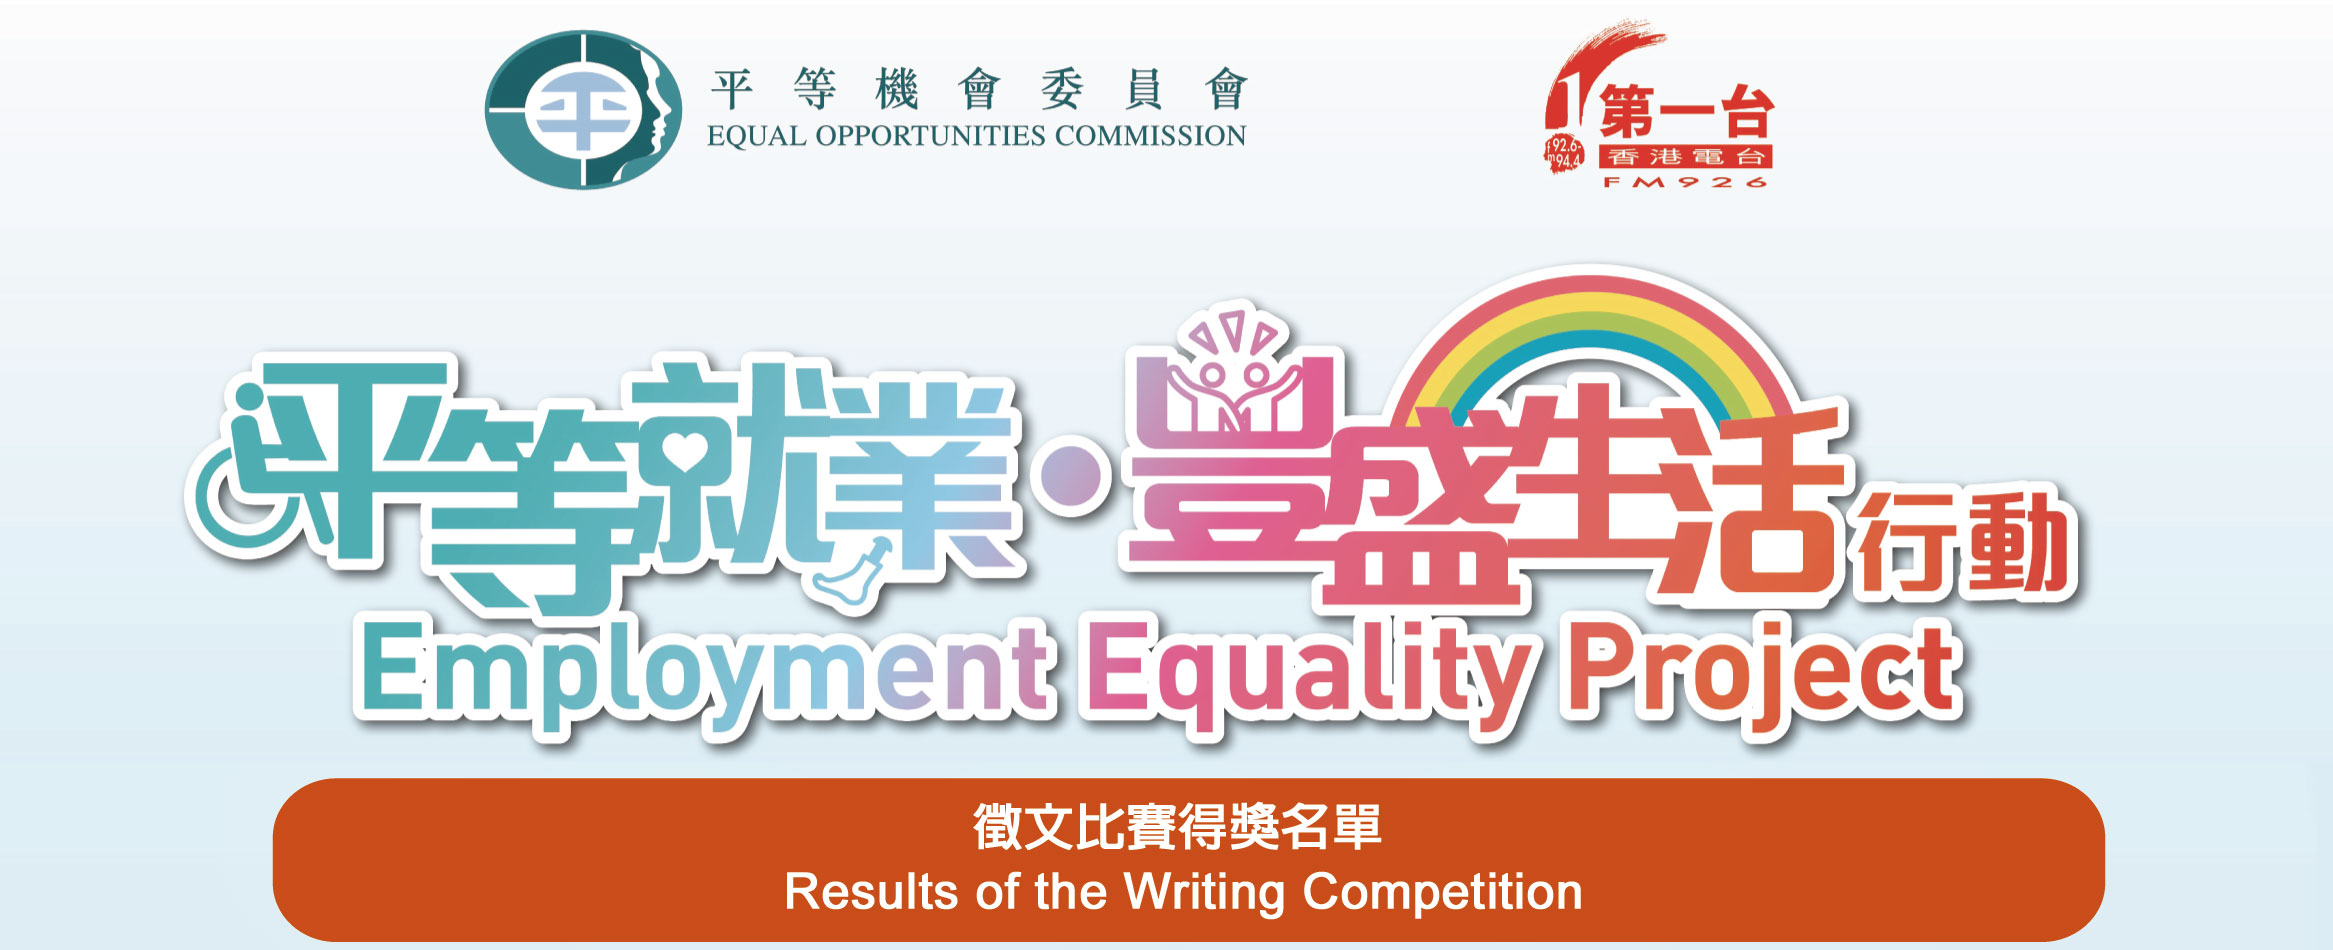 Employment Equality Project (2017-2018) Writing Competition Results